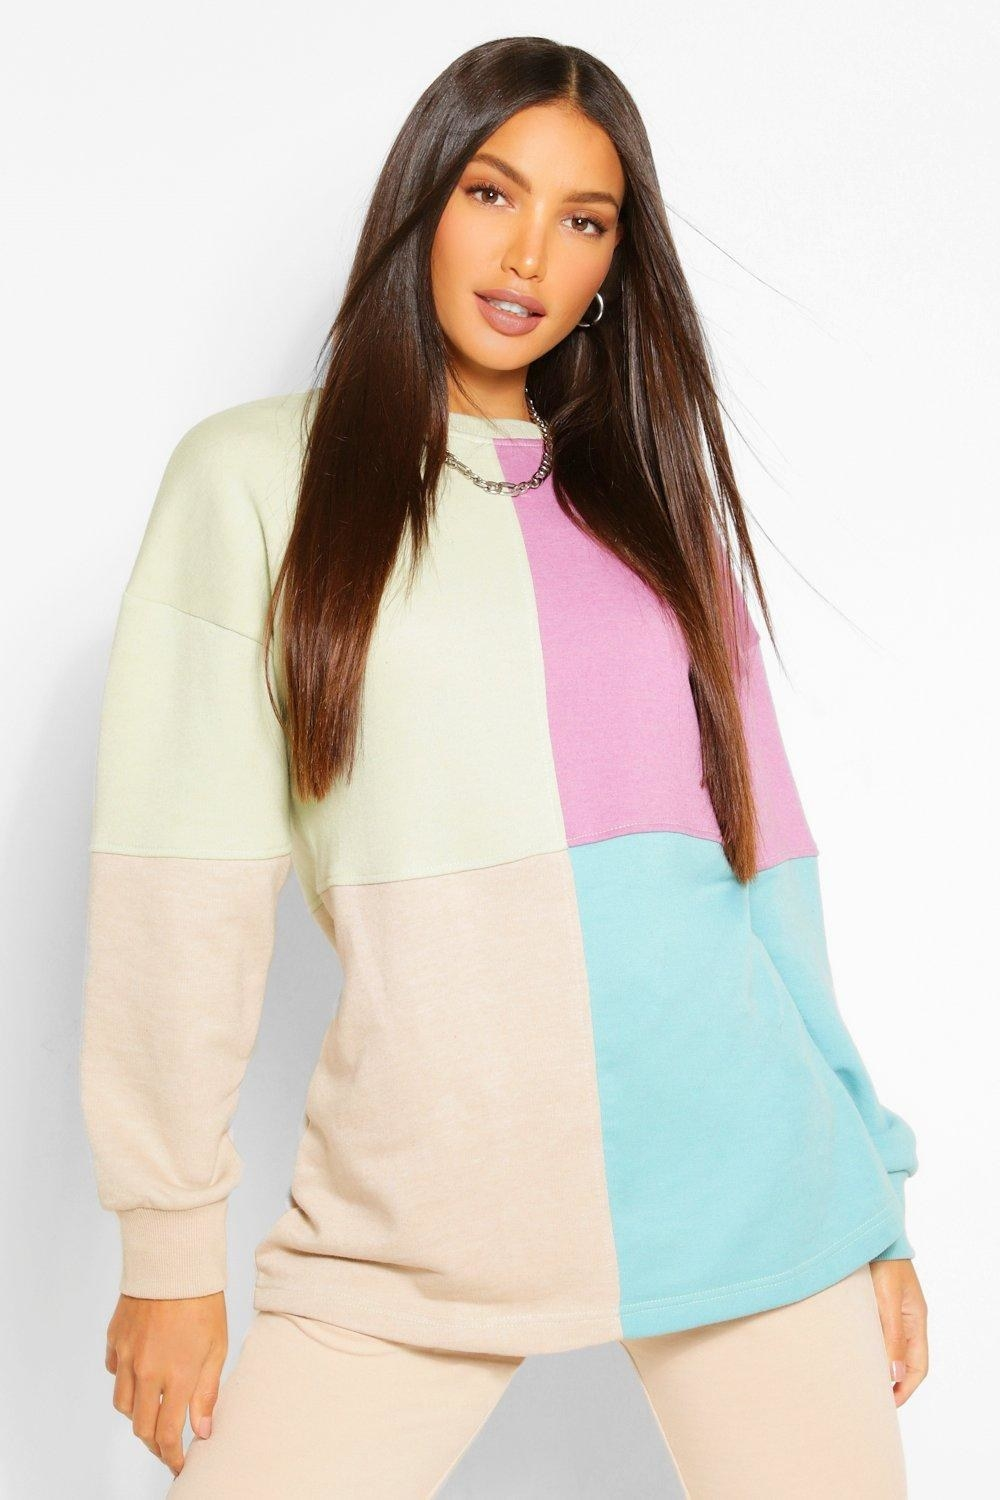 a model wearing the color block sweatshirt